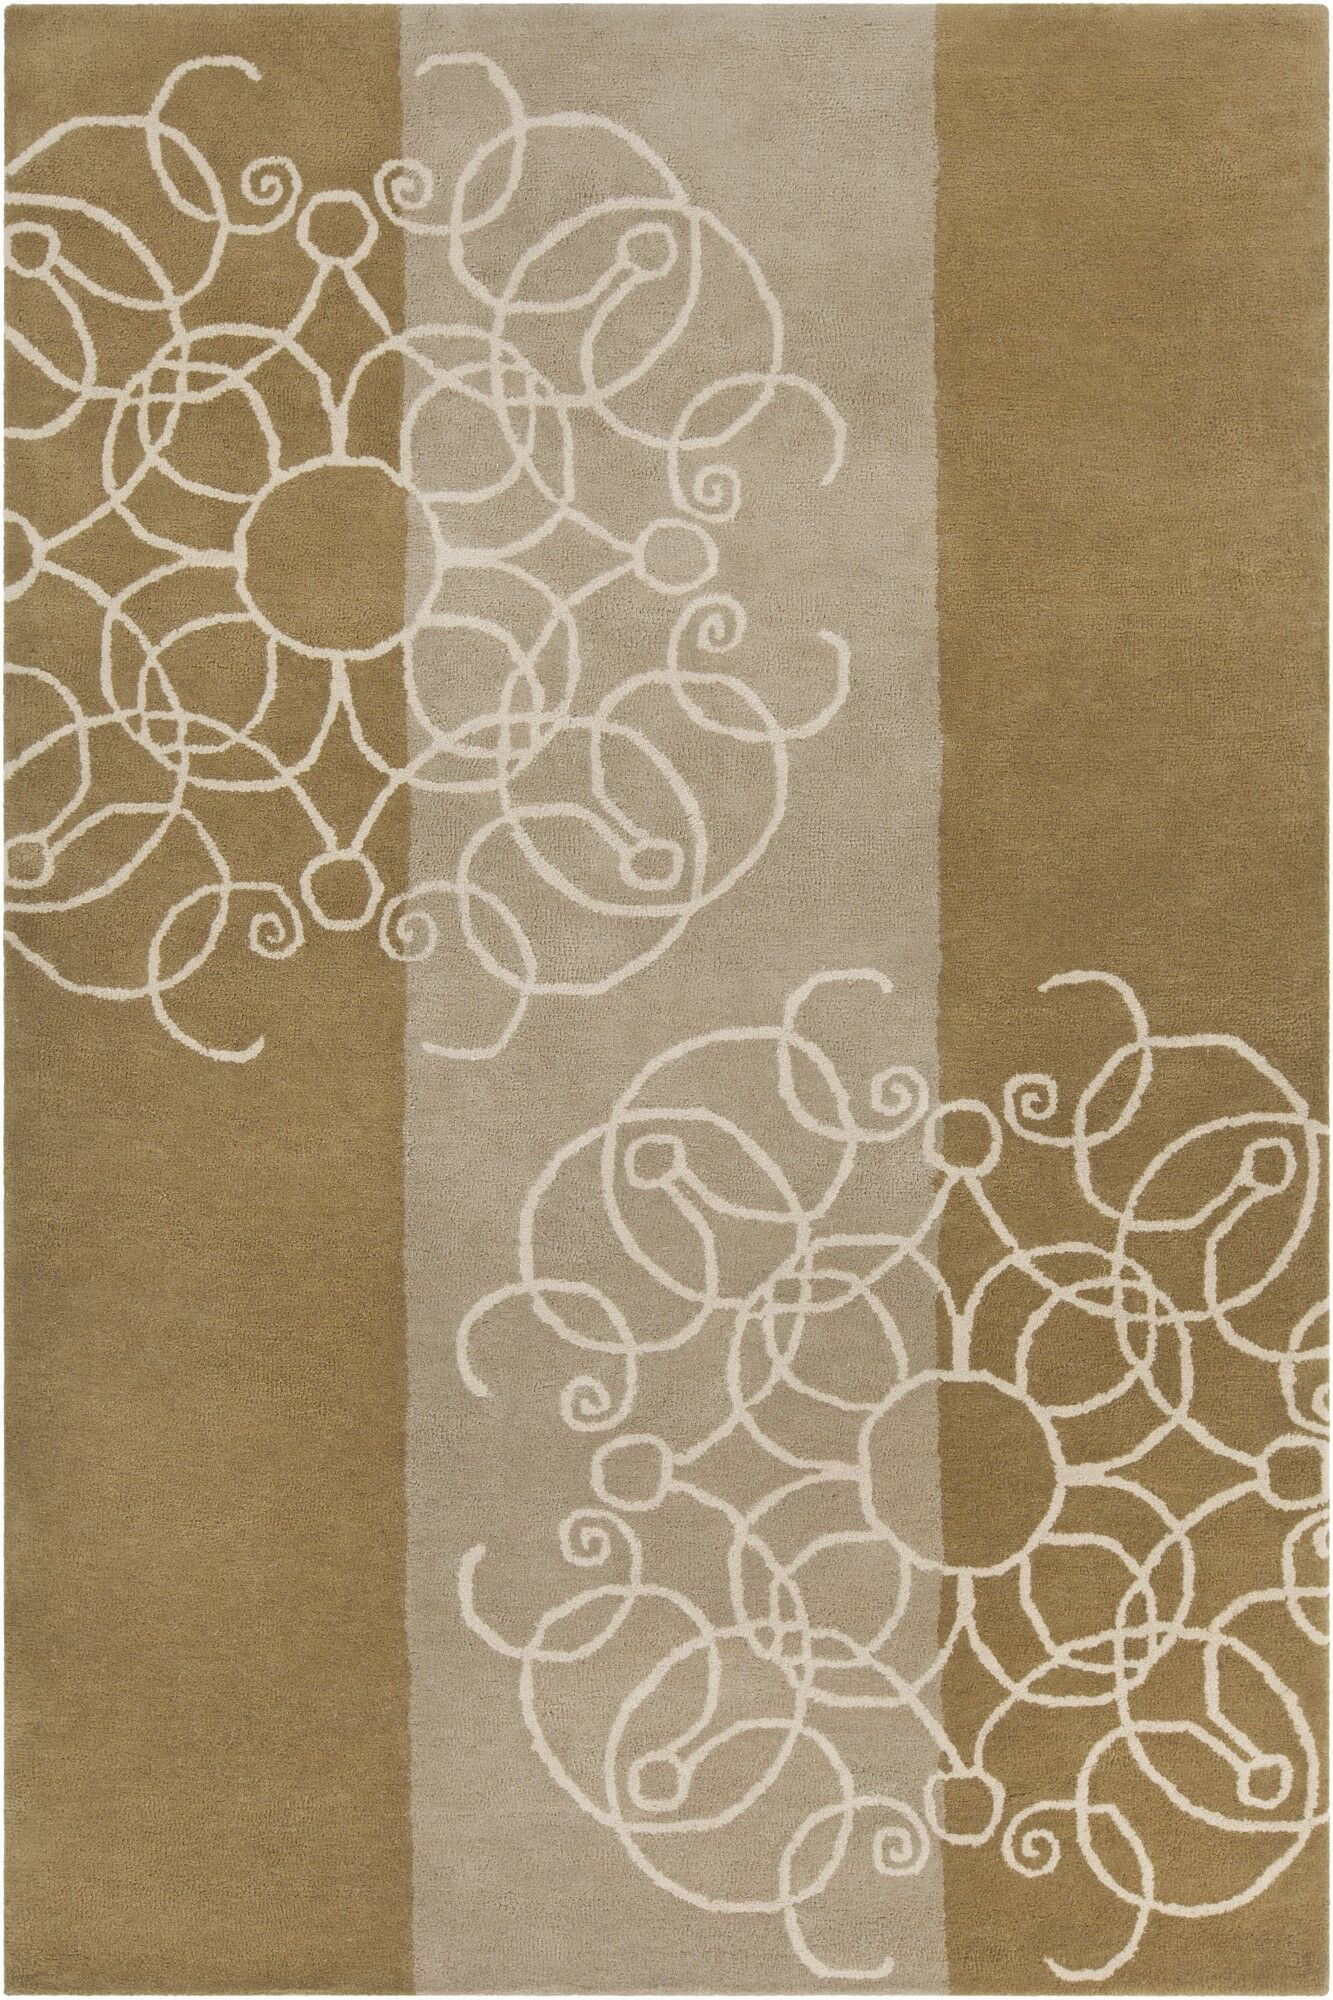 Willow Hand Tufted Wool Brown/Cream Area Rug Rug Size: 5' x 7'6